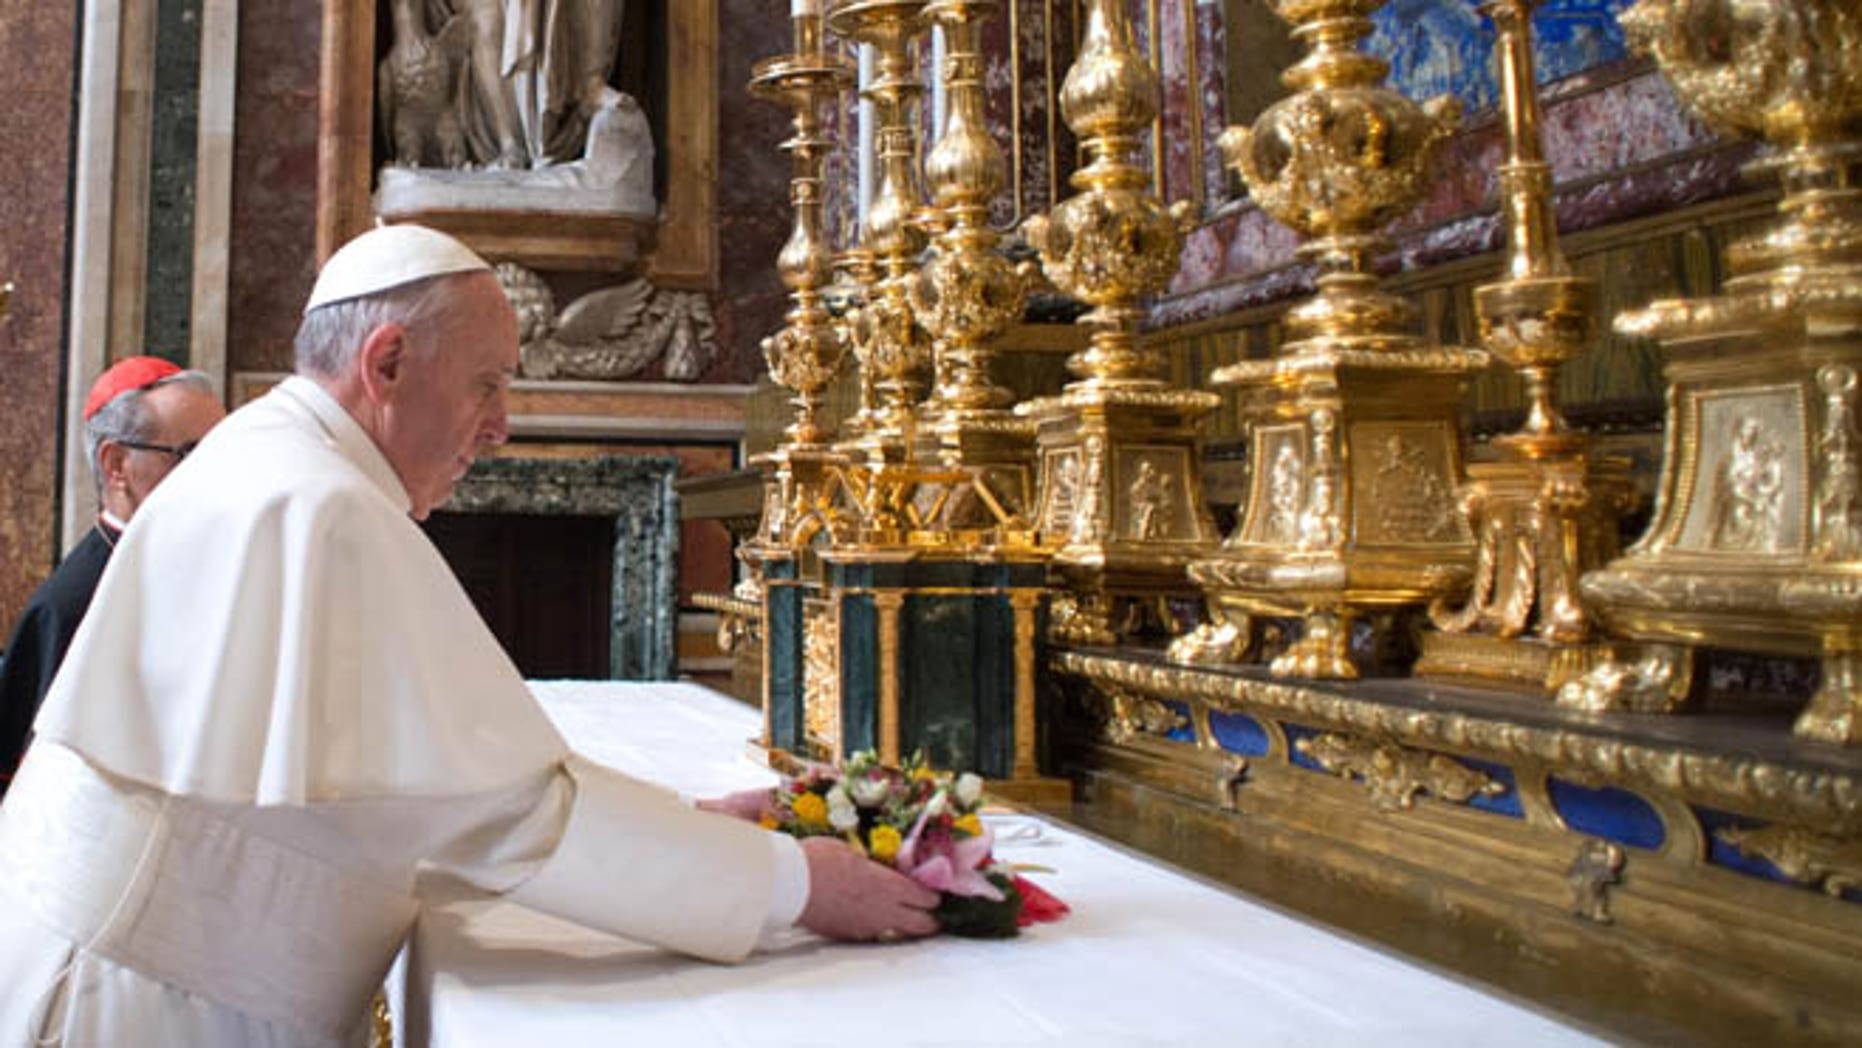 March 14, 2013: Pope Francis makes a private visit to the 5th-century Basilica of Santa Maria Maggiore in Rome.